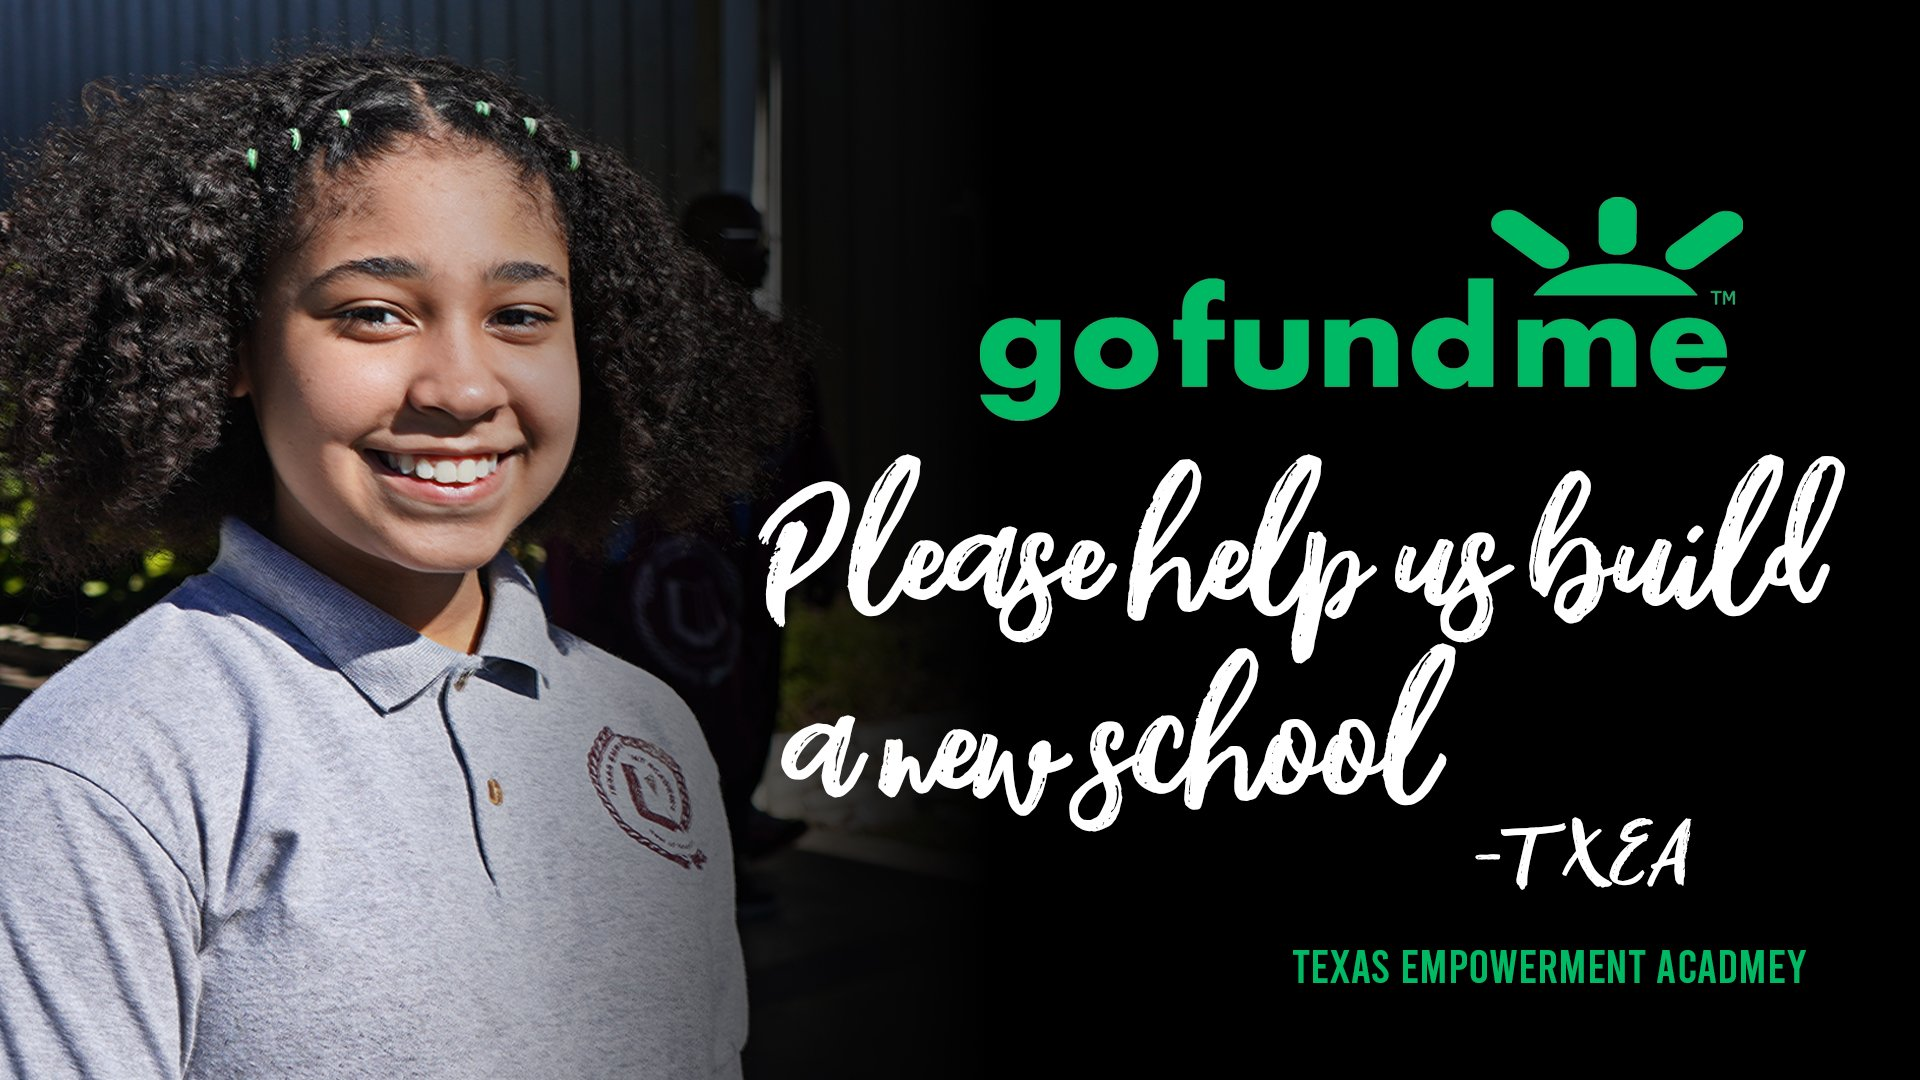 Donate to our Austin Charter School